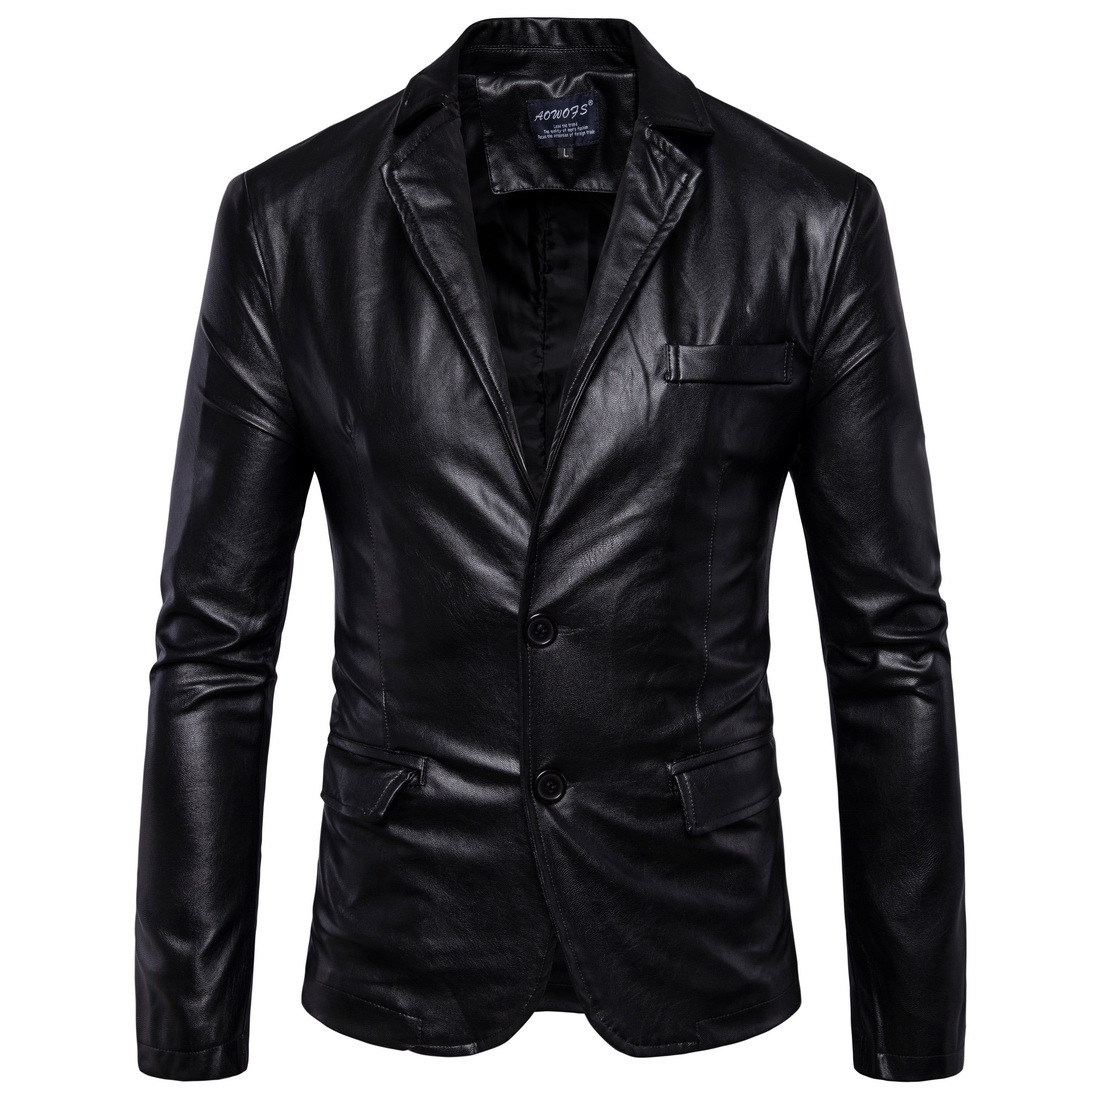 Men PU Leather Blazer Jacket V-collar Buttons Solid Coats Jackets Motorcycle Riding Jackets Casual Sports Vintage Men Jackets